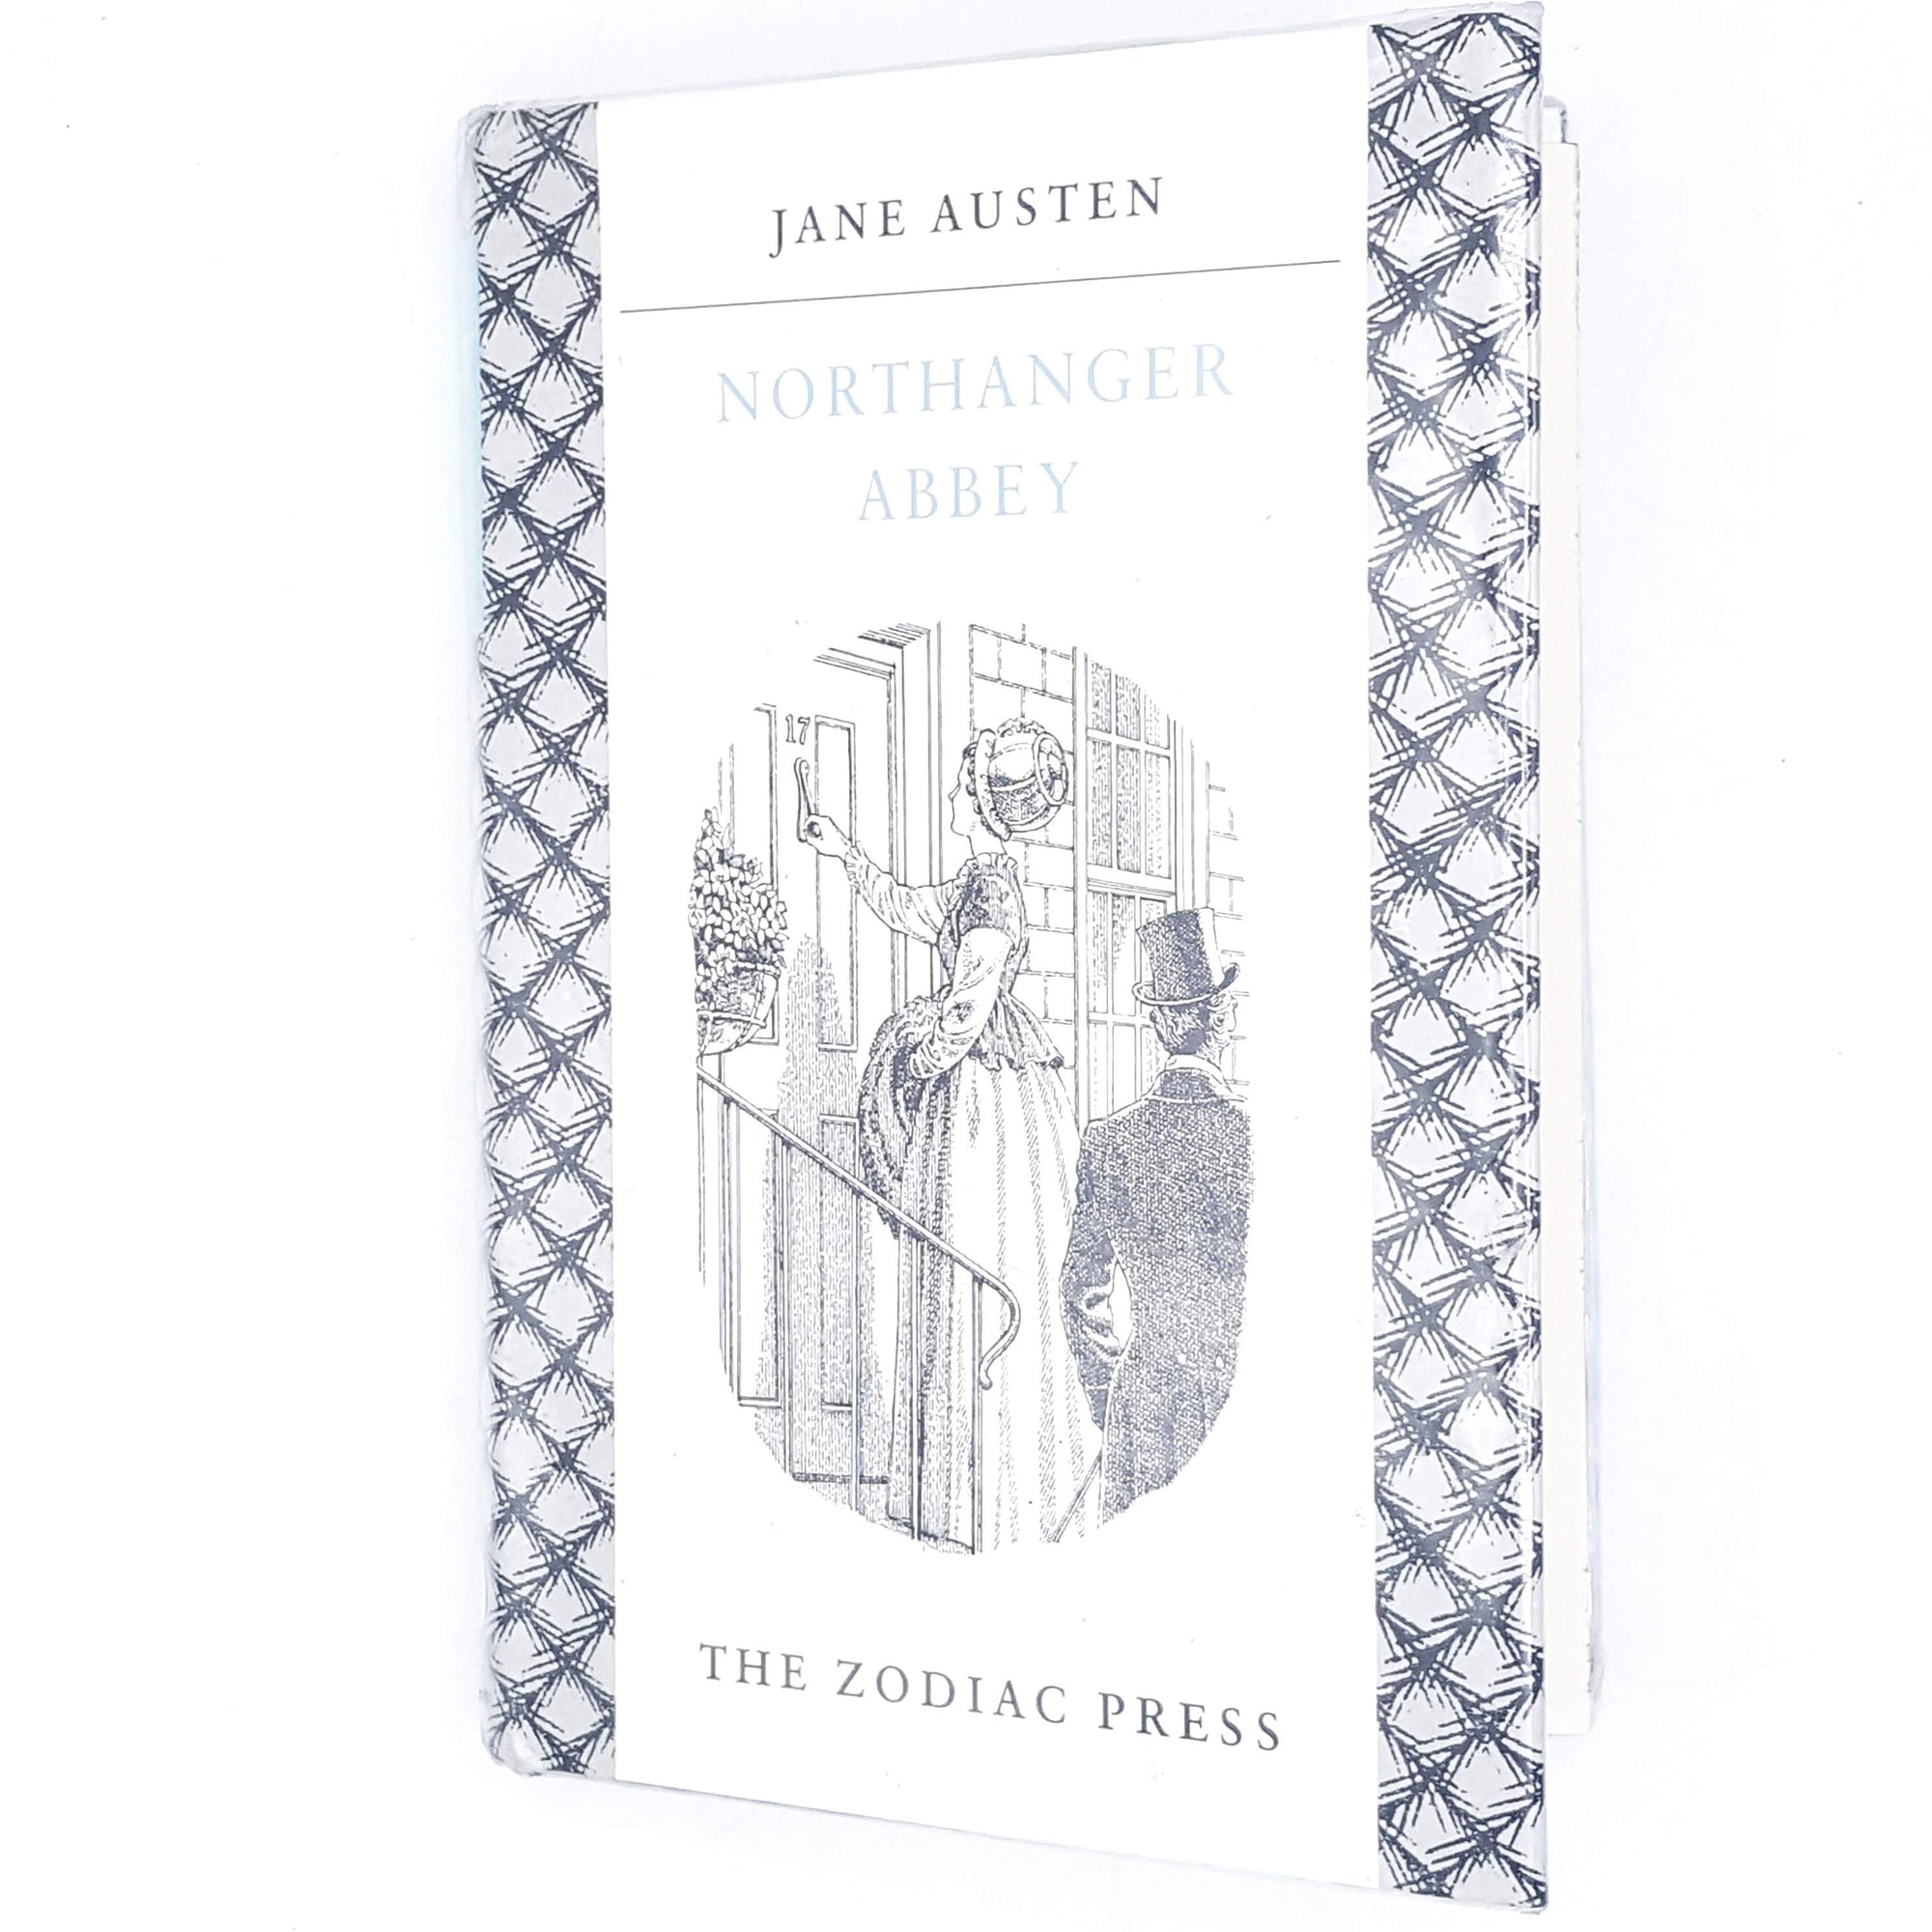 Jane Austen's Northanger Abbey Zodiac Press